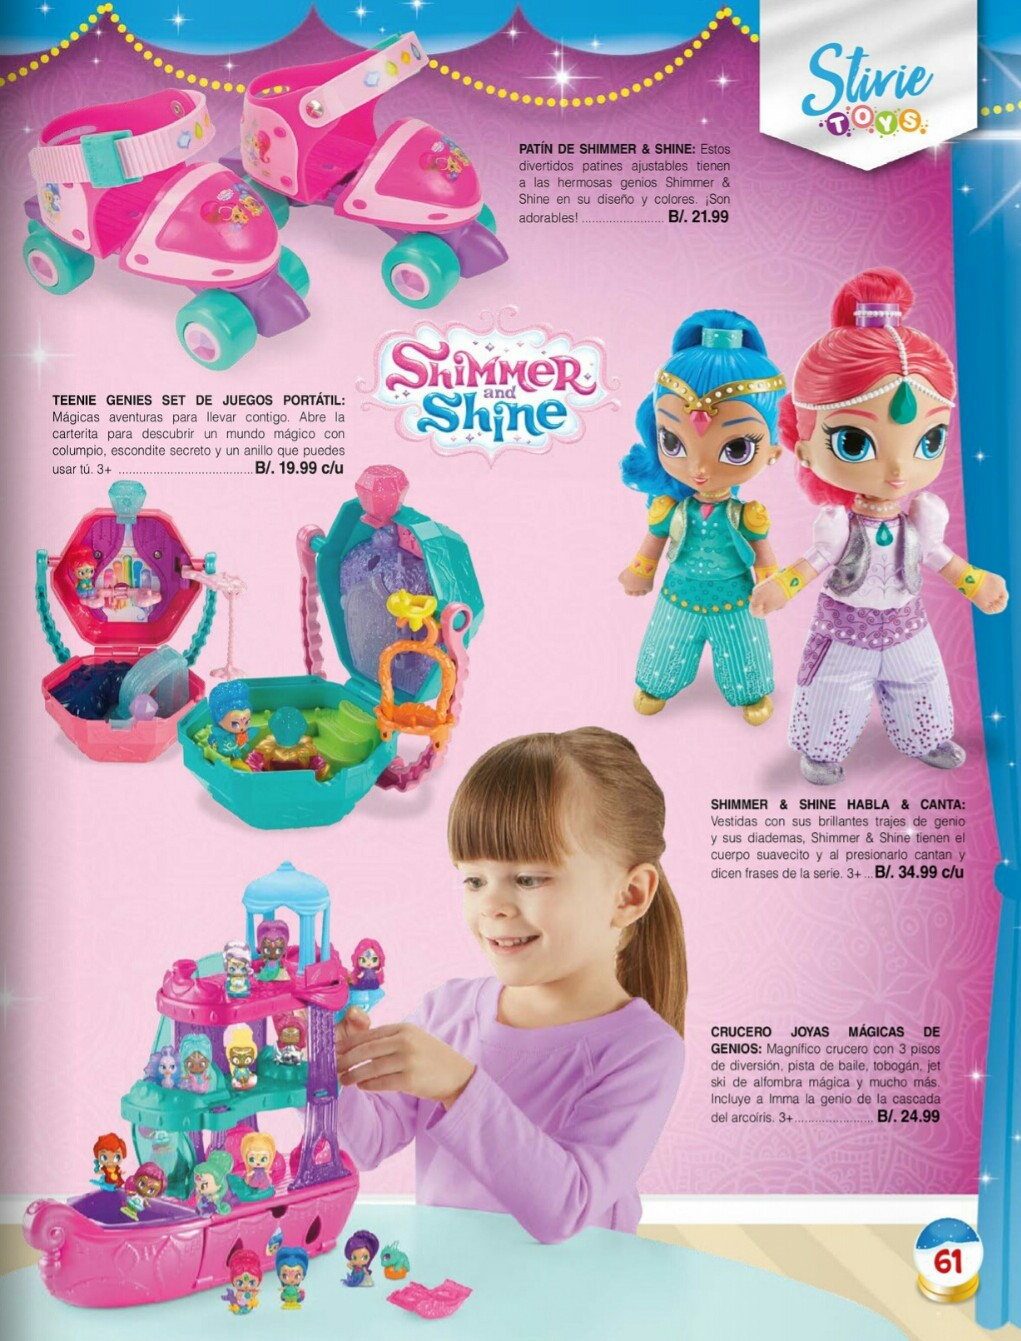 Catalogo juguetes Stivie toys 2018 p61